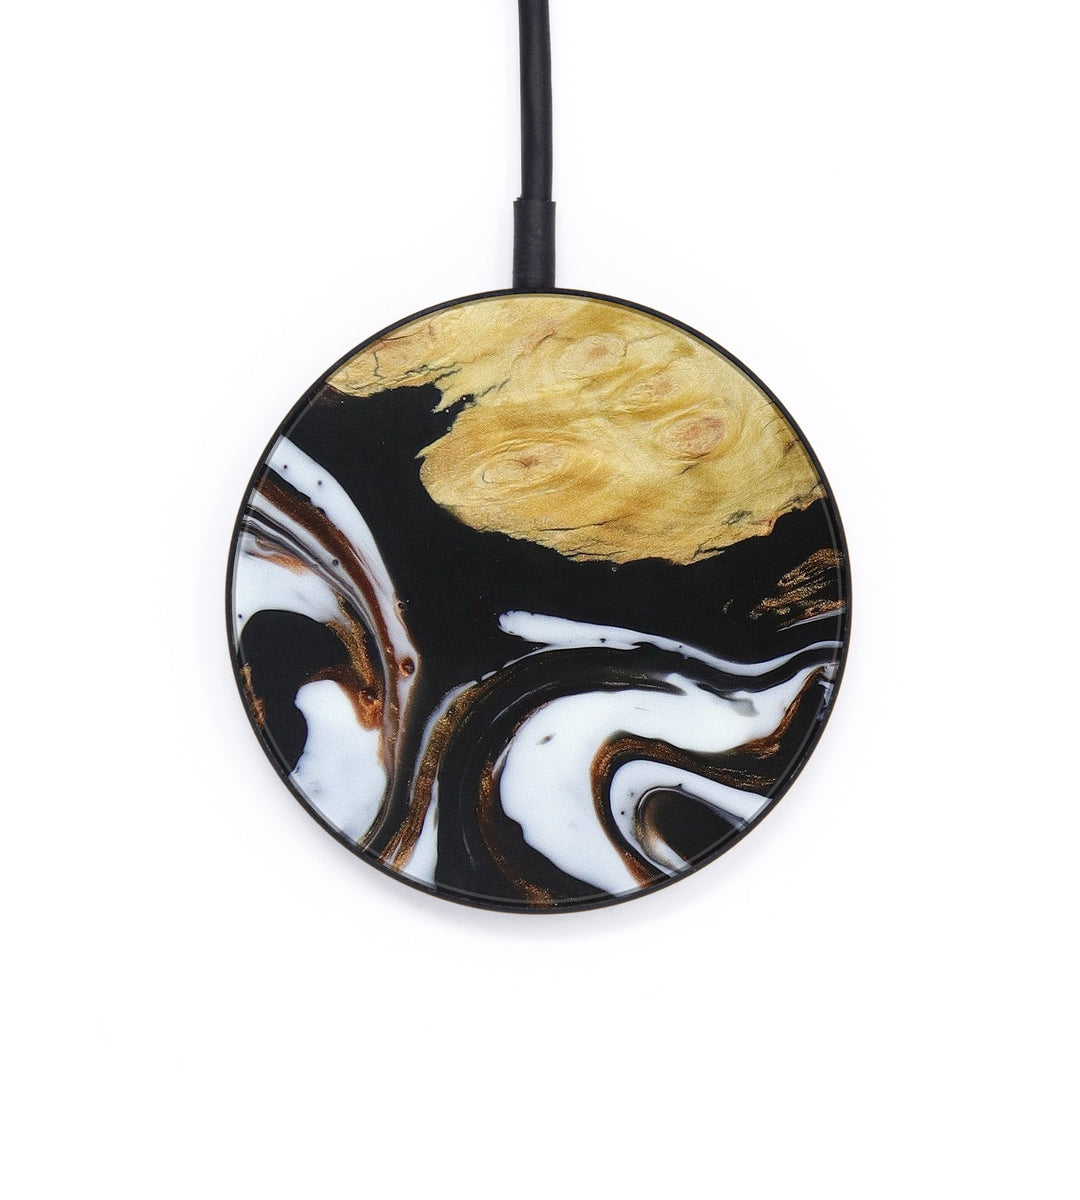 Circle Wood+Resin Wireless Charger - Sabina (Black & White, 393655)